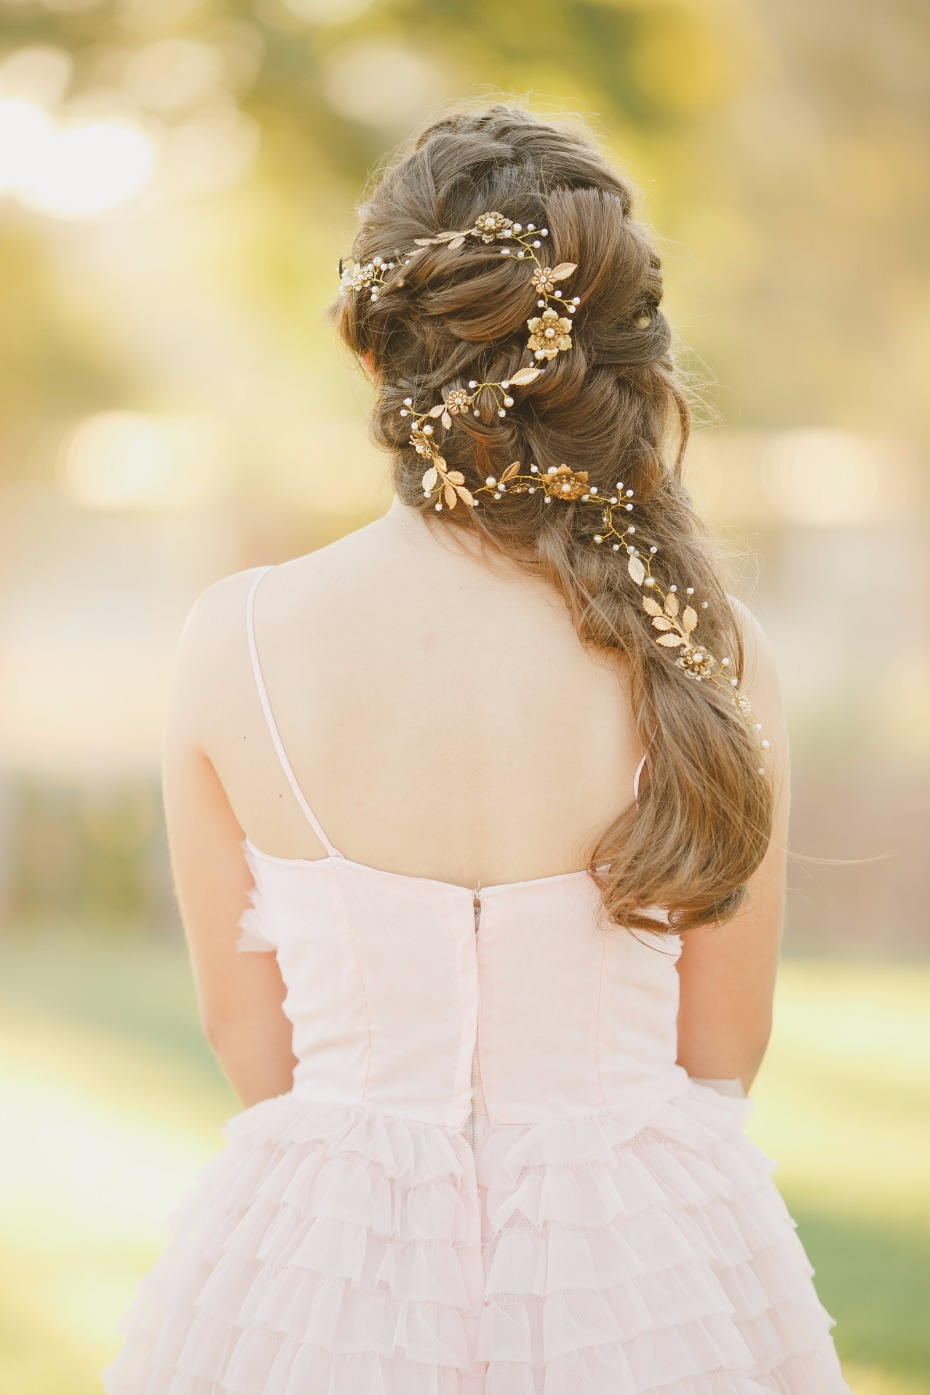 Gold vine hair accessory from Be Something New